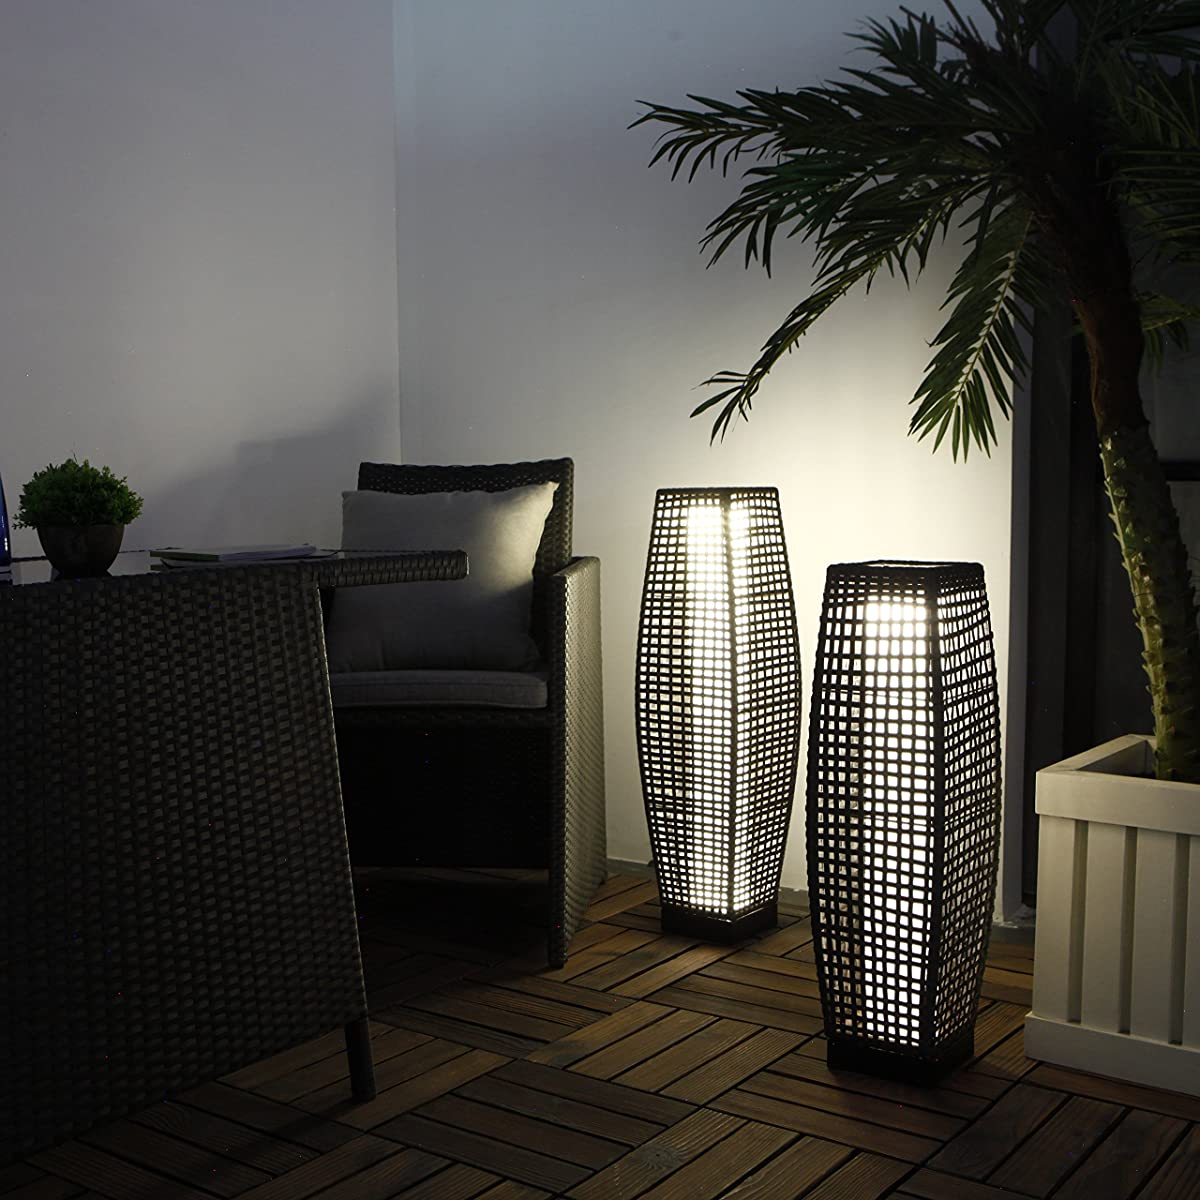 Grand Patio Super Bright Outdoor Floor Lamp Large-Sized, Solar Powered Lamp Light, Weather–Resistant Rattan Floor Lamp for Patio, Deck, Path and Garden